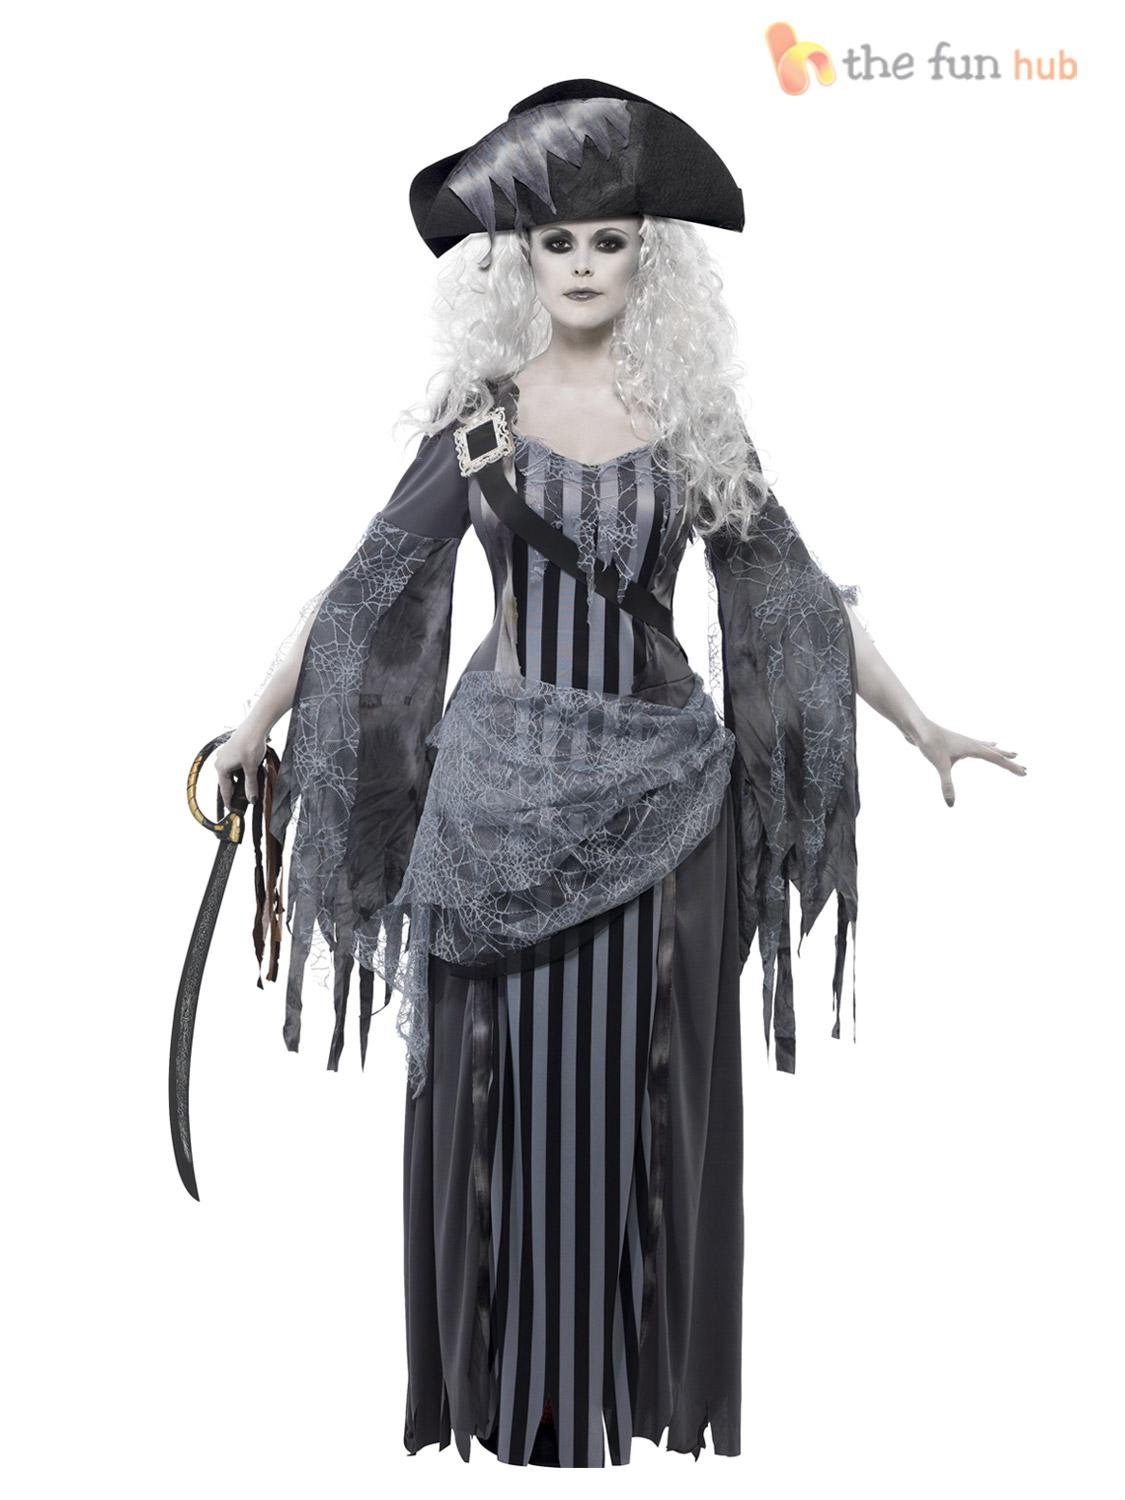 adulte femme sexy vaisseau fant me zombie pirate costume womens halloween fancy dress ebay. Black Bedroom Furniture Sets. Home Design Ideas